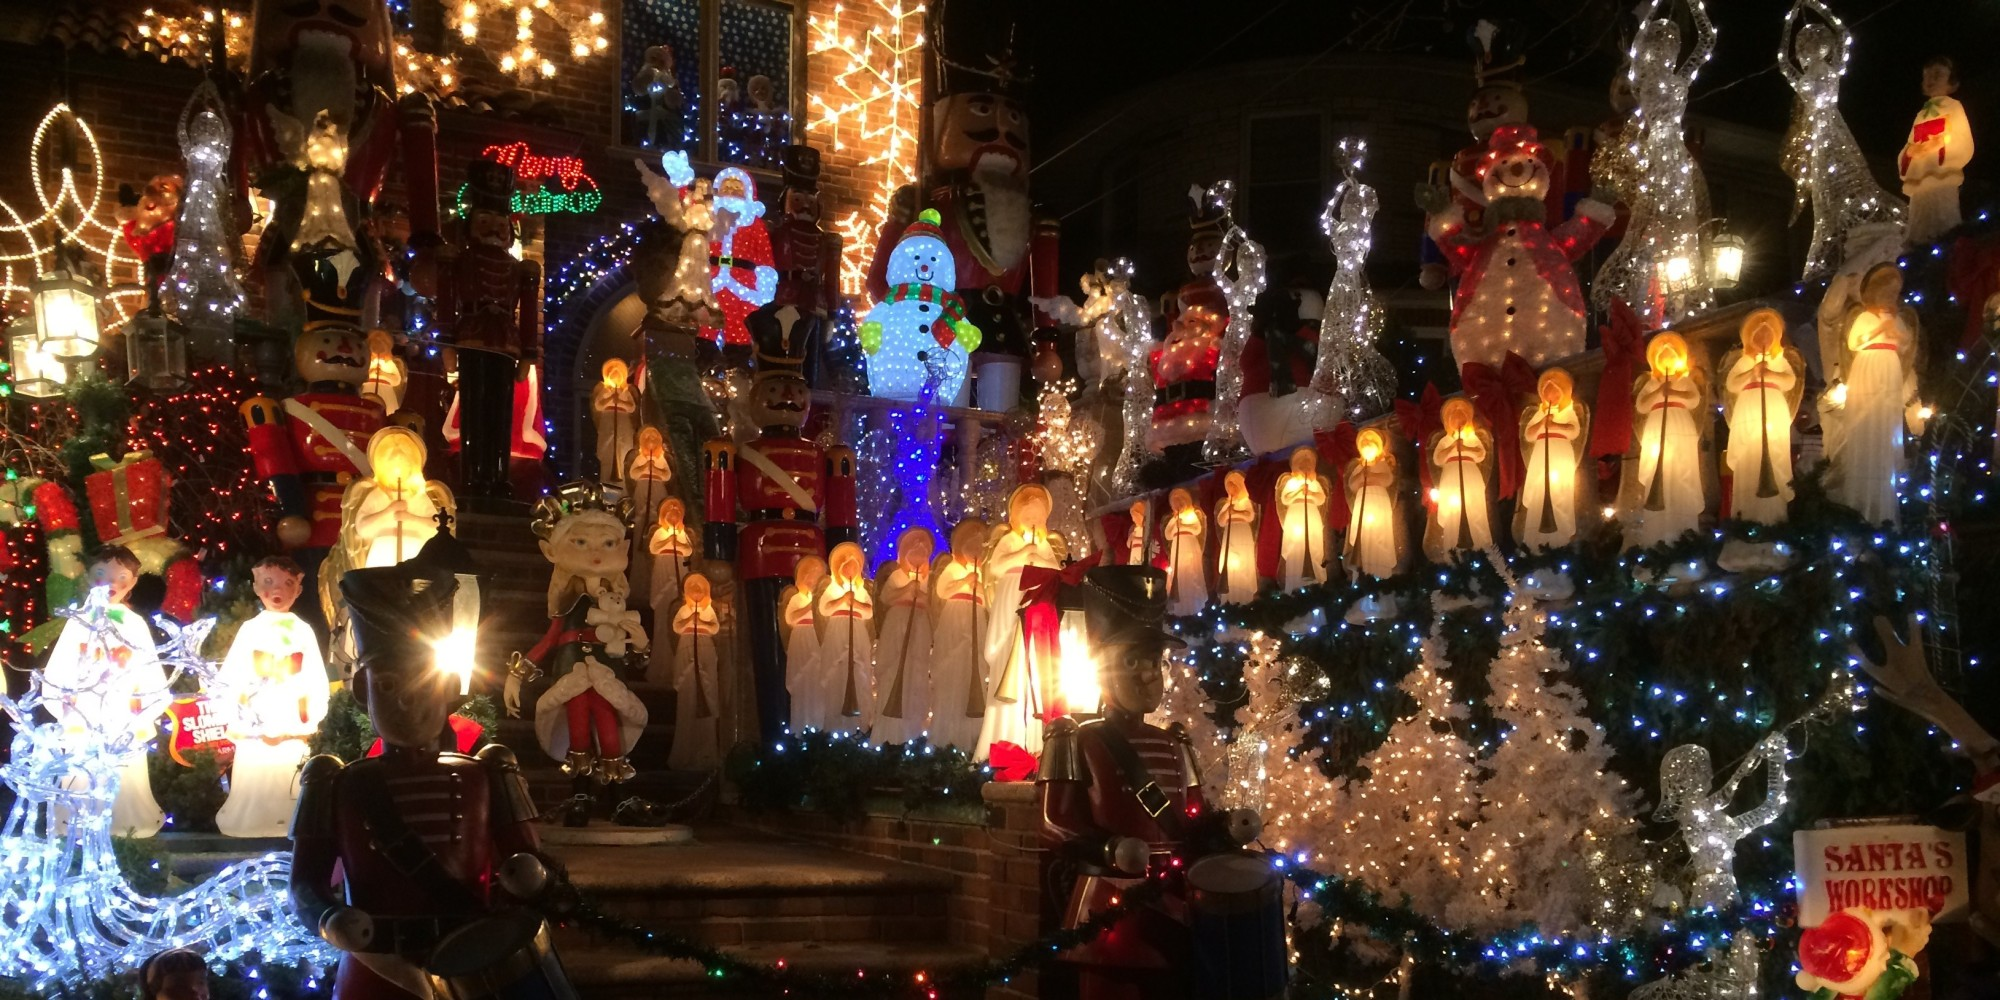 The Best U.S. Neighborhoods to See Holiday Lights in 2014 | HuffPost